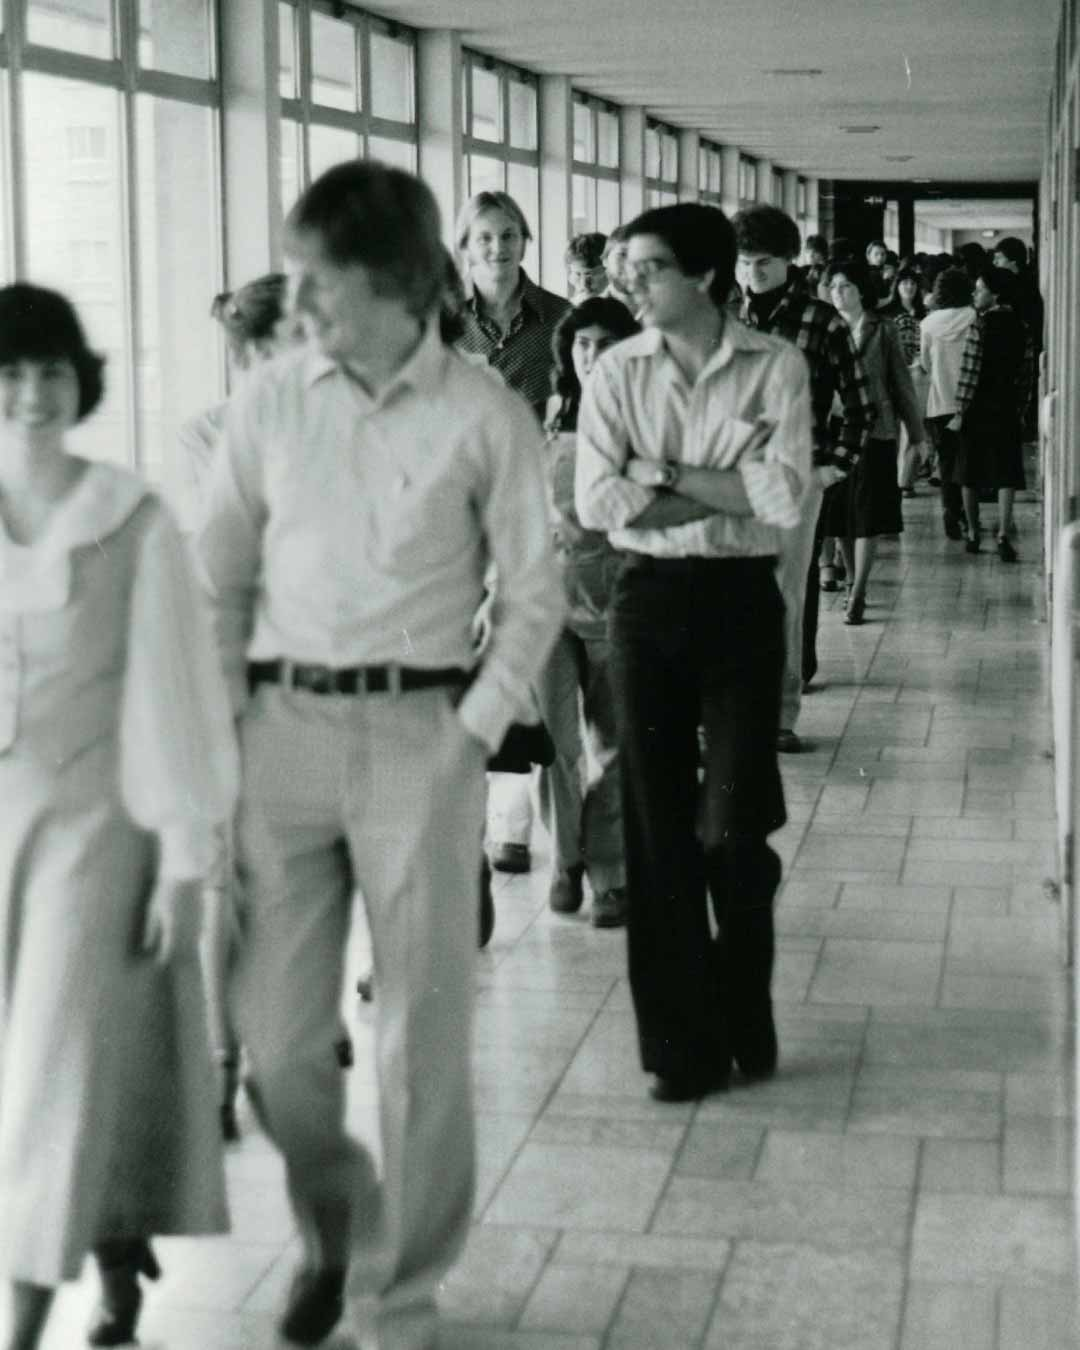 old photos of students lobby in crown college